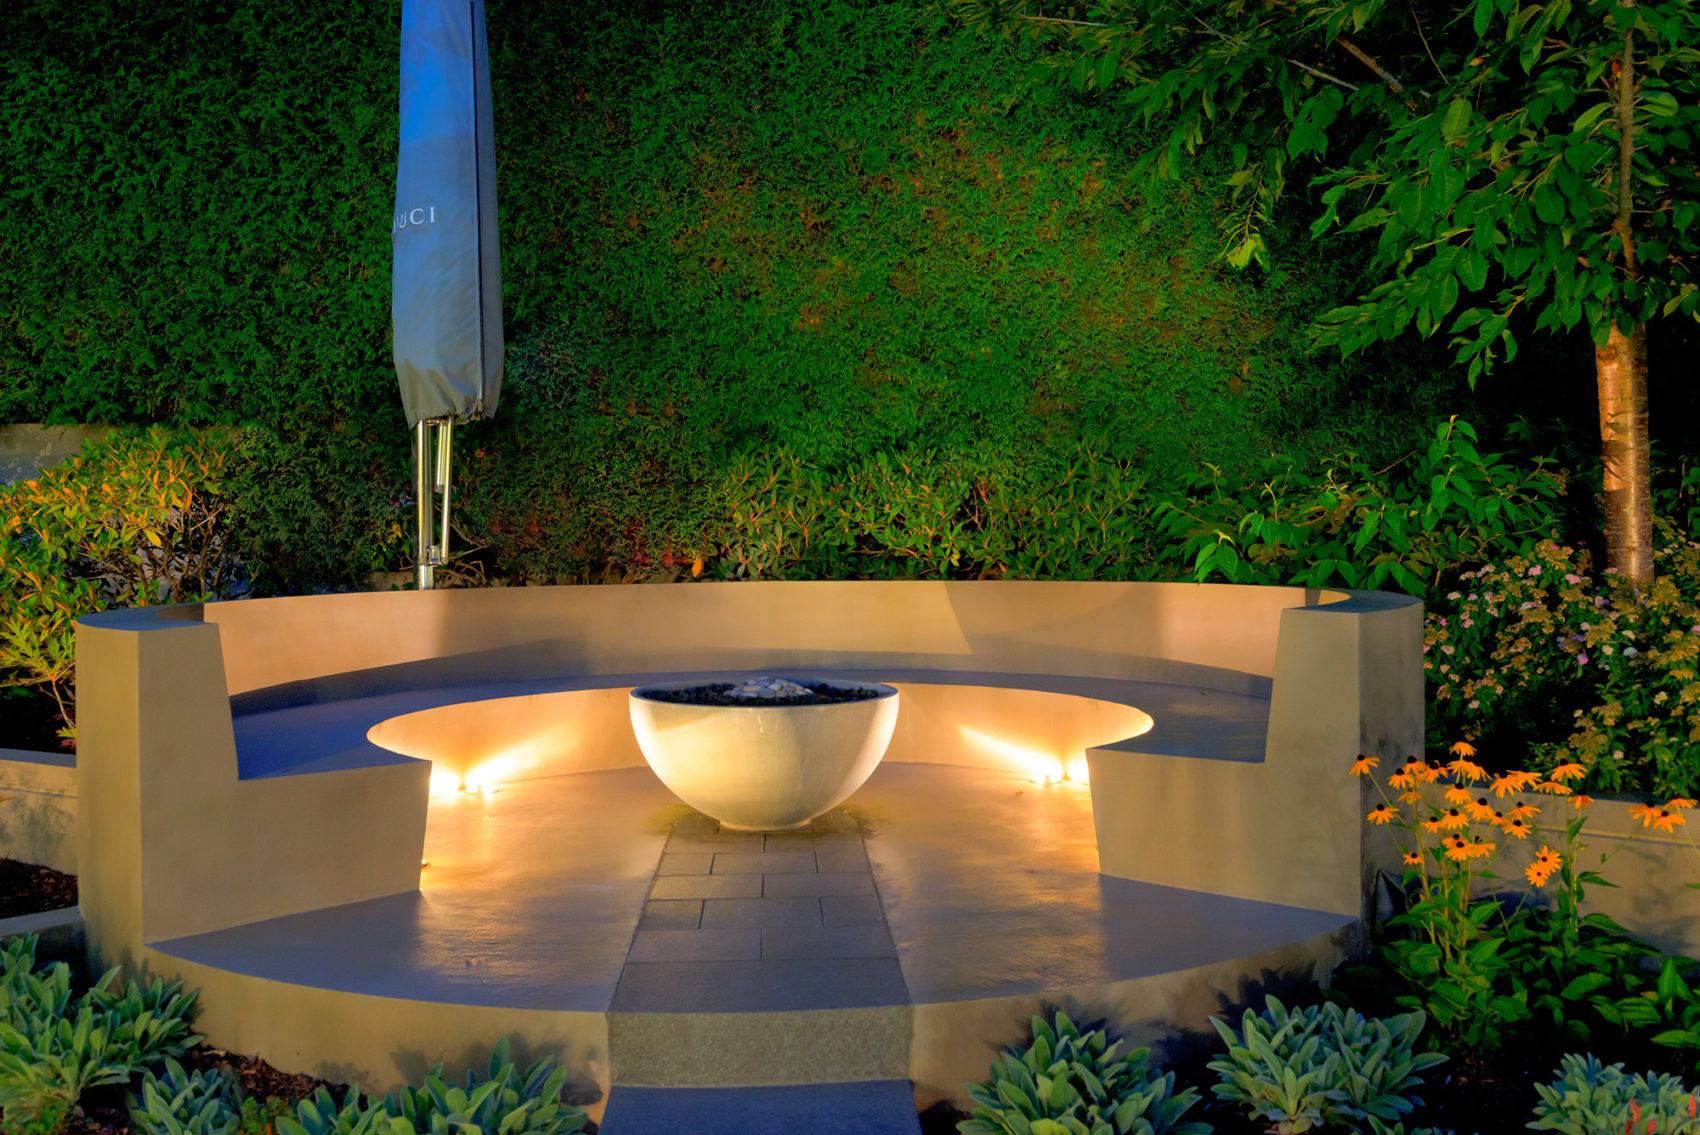 Solus Hemi 36 with curved seating lit beautifully at night